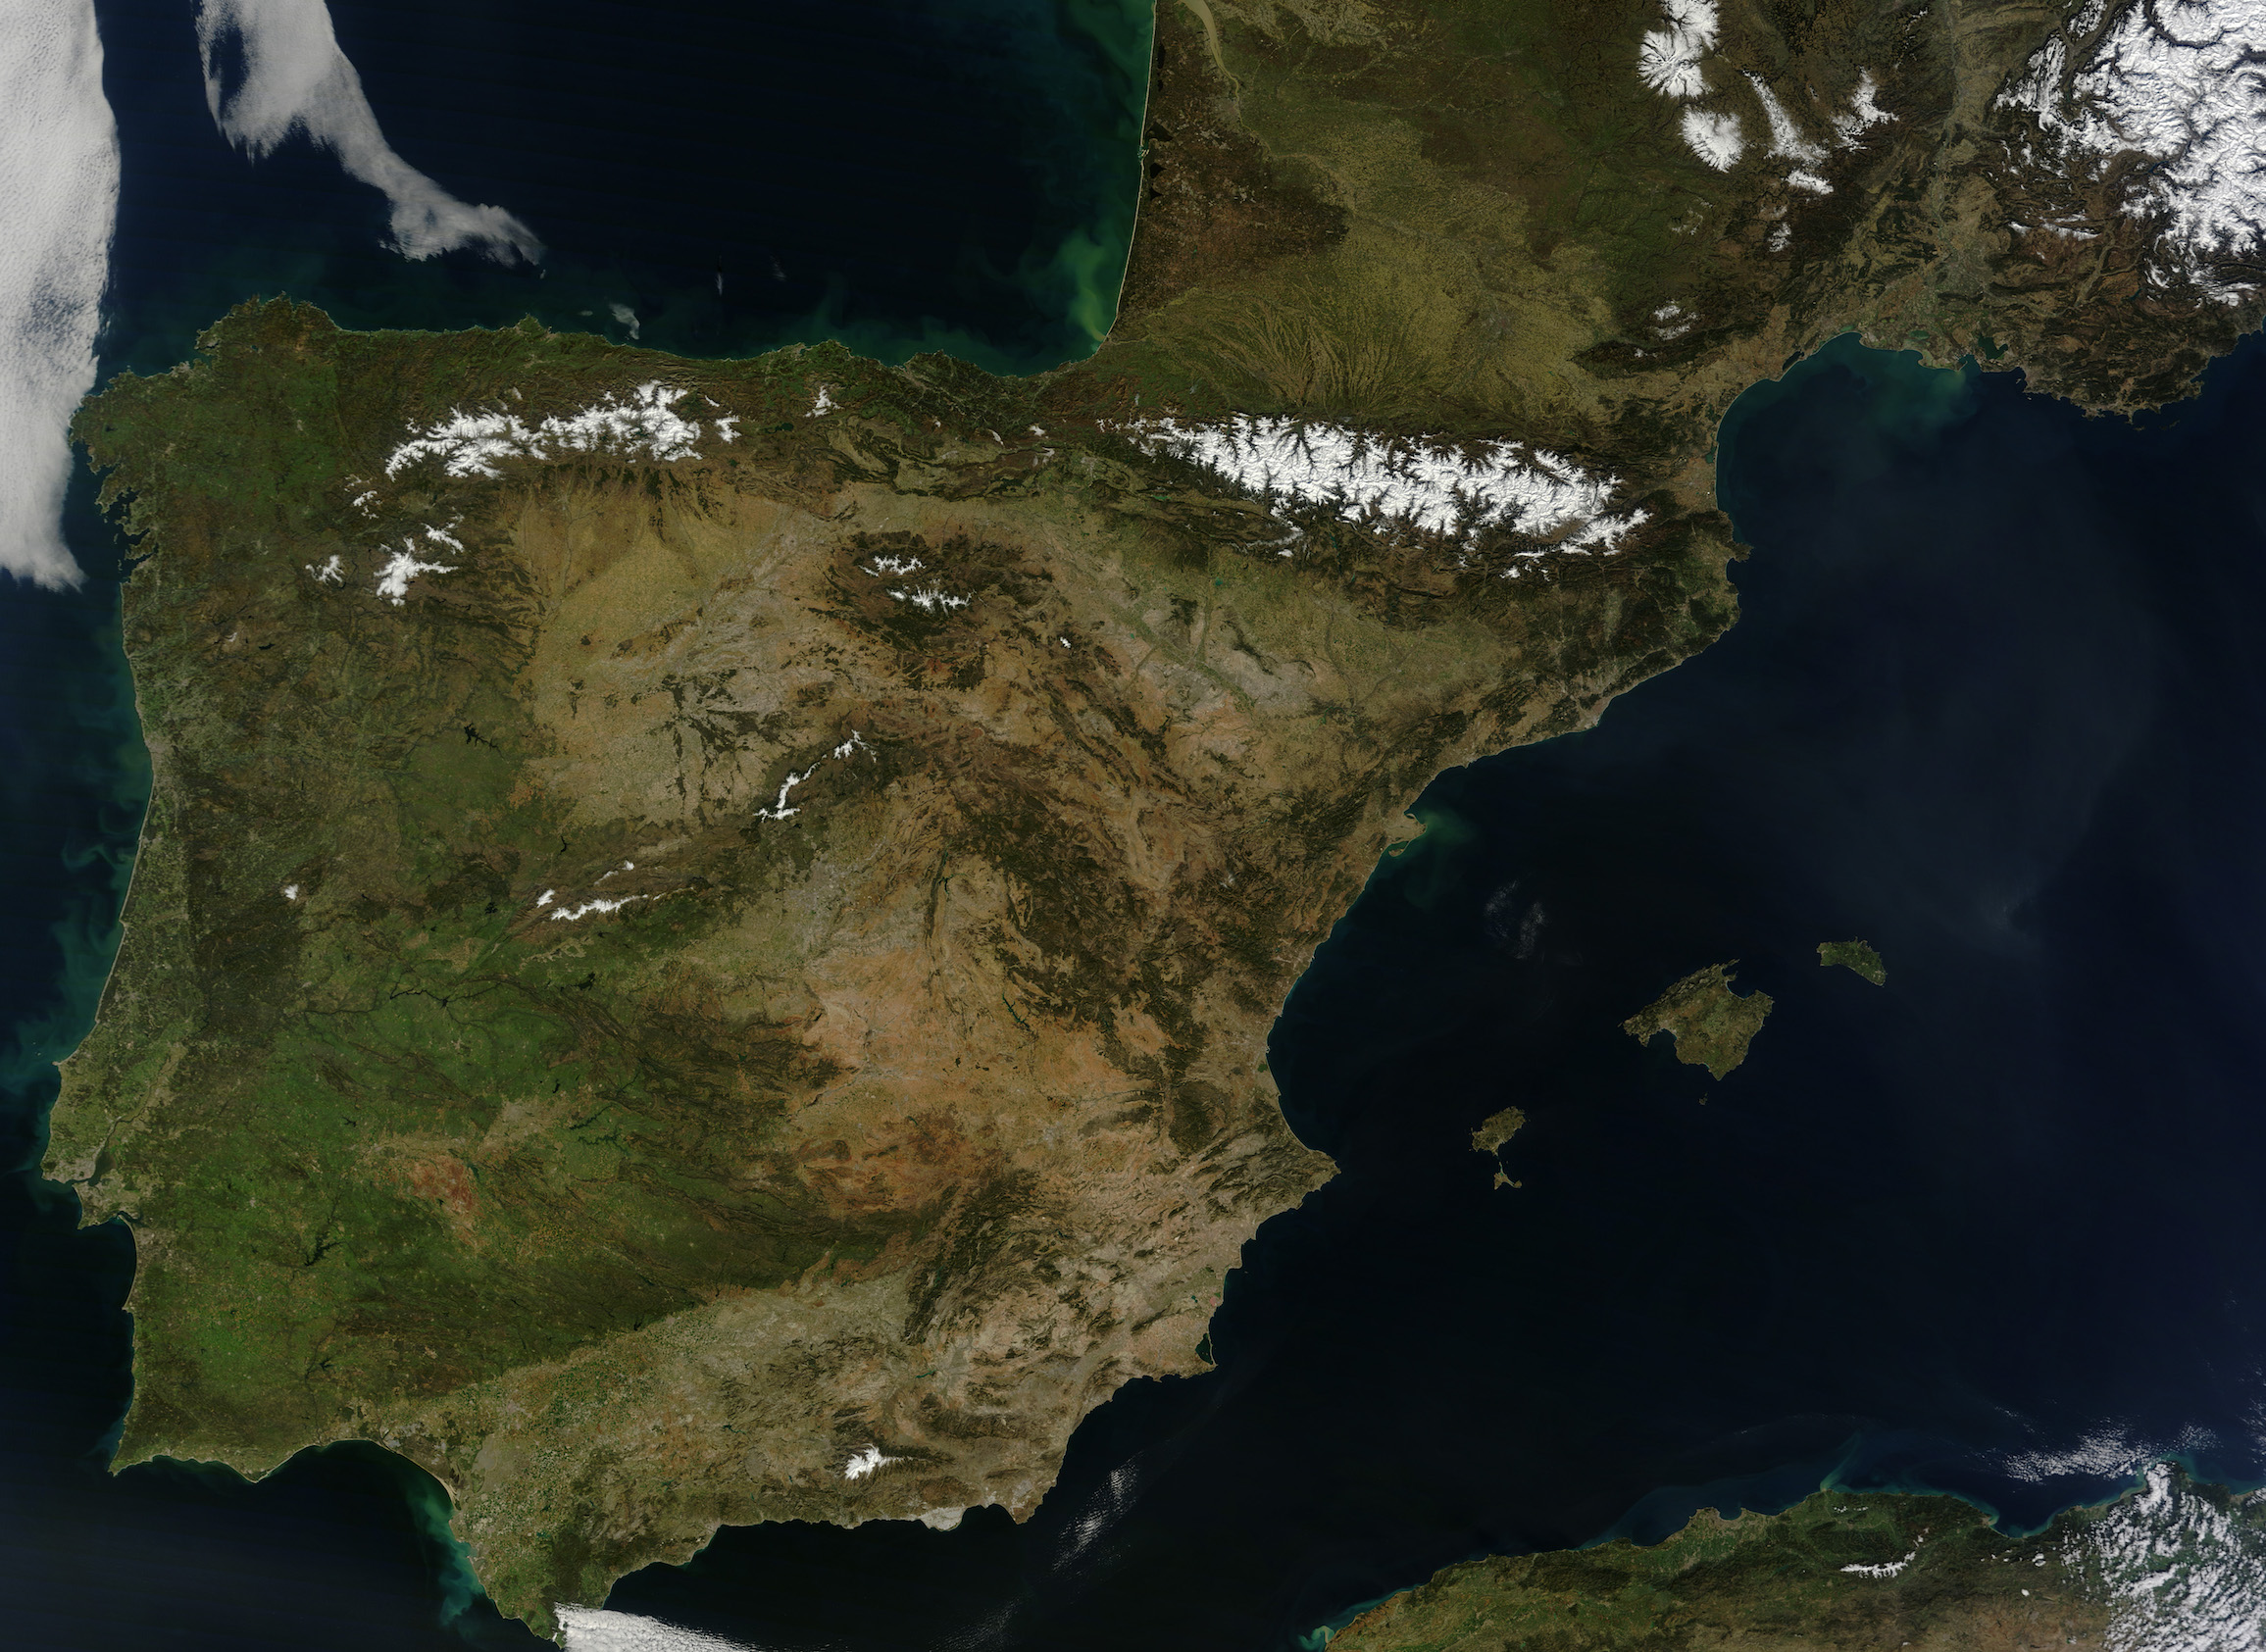 Today's Image of the Day comes from the NASA Earth Observatory and features a look at Spain, Portugal, Andorra, and southern France on a perfectly clear day.